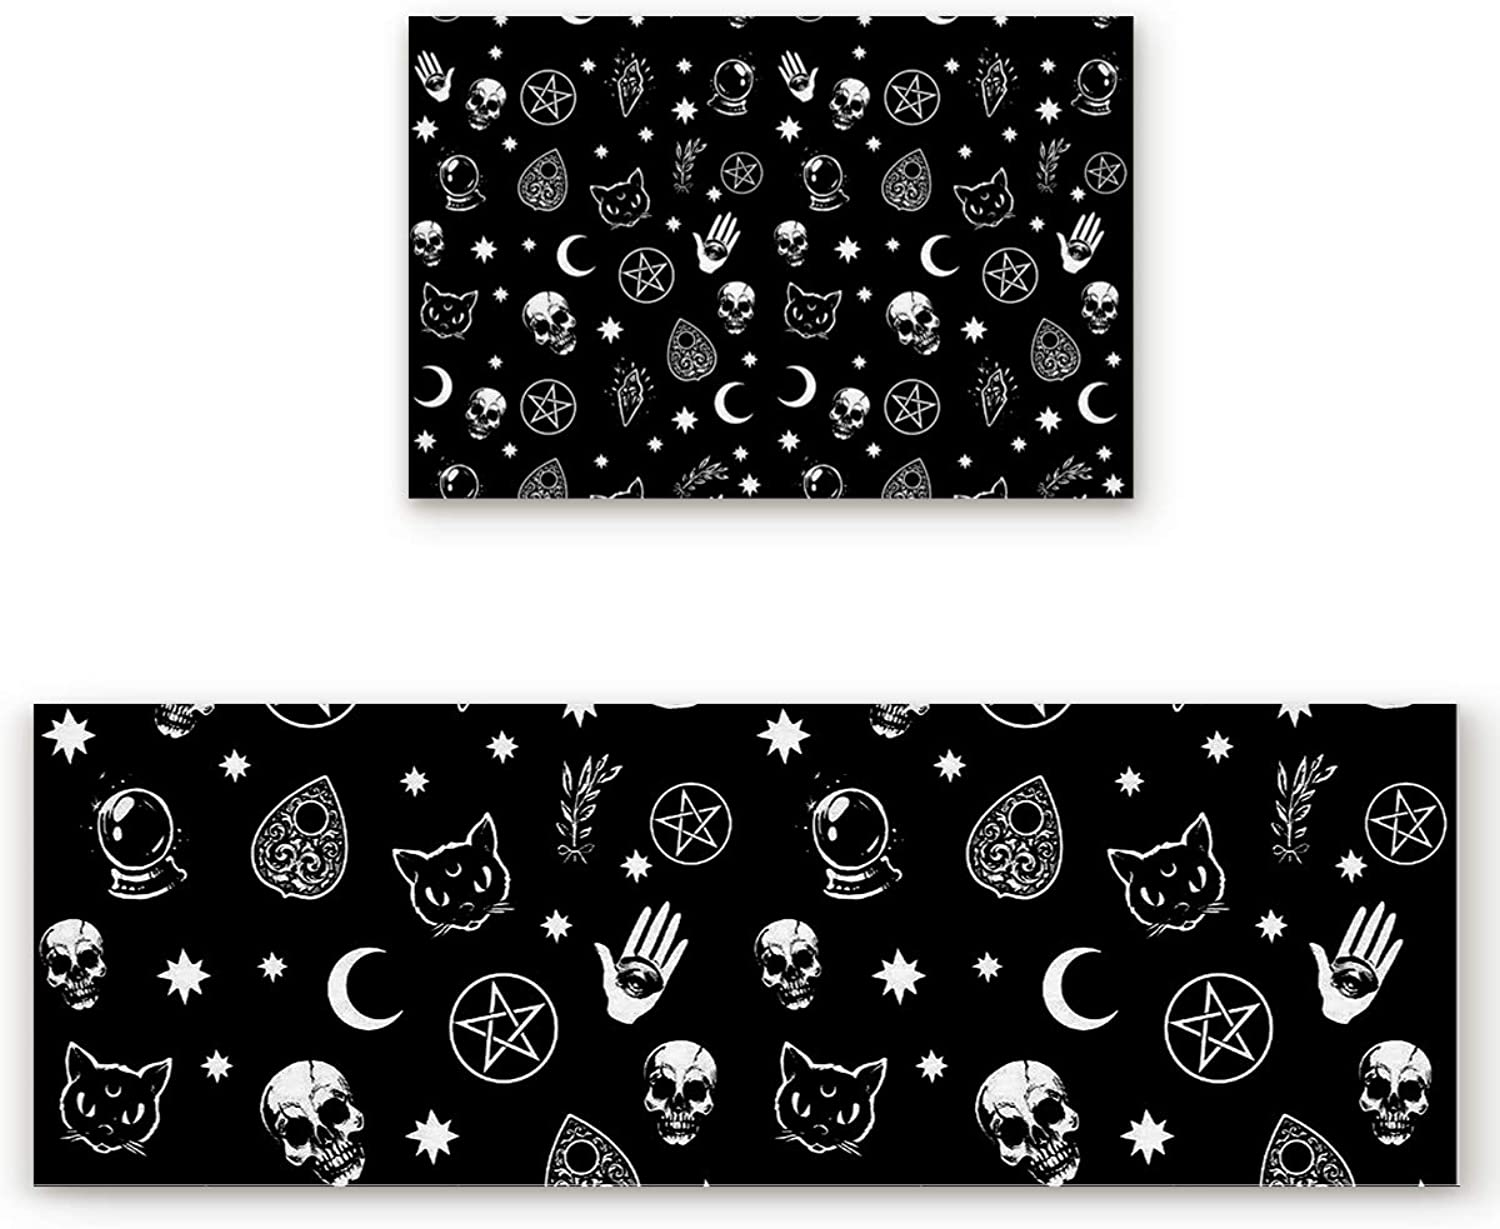 Savannan 2 Piece Non-Slip Kitchen Bathroom Entrance Mat Absorbent Durable Floor Doormat Runner Rug Set - Skull and Cat